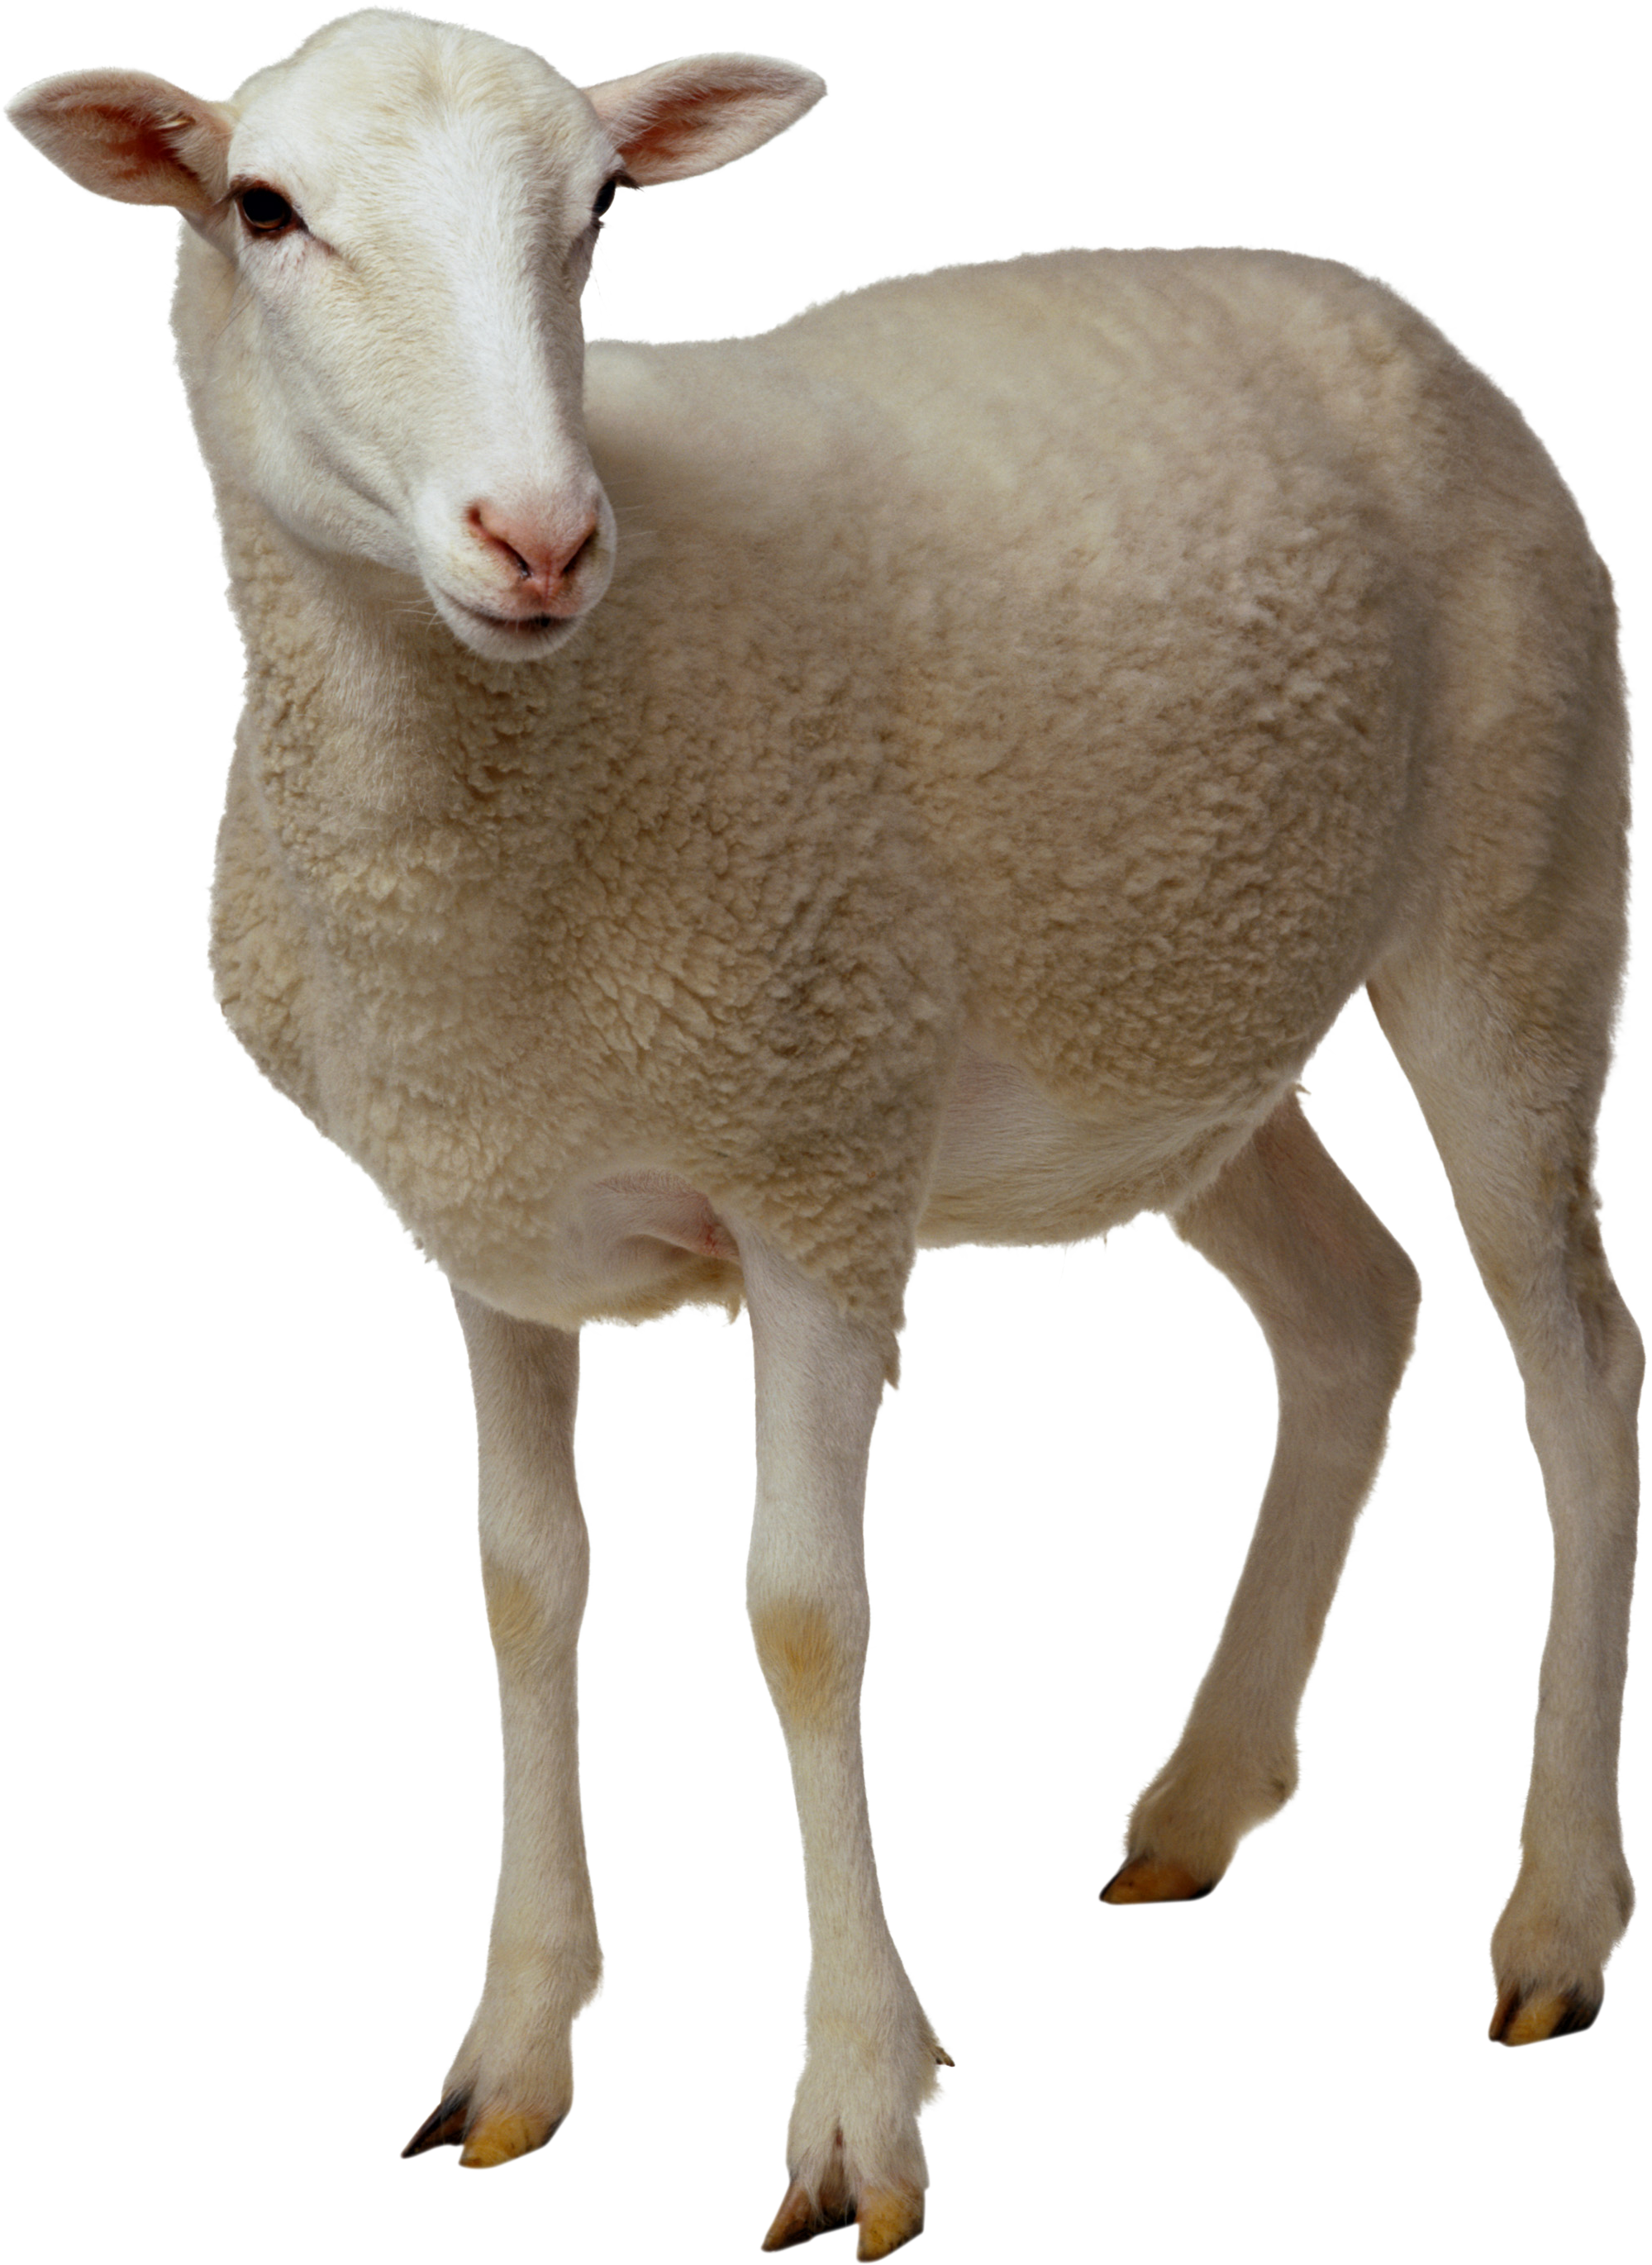 sheep PNG image - Real Animal PNG